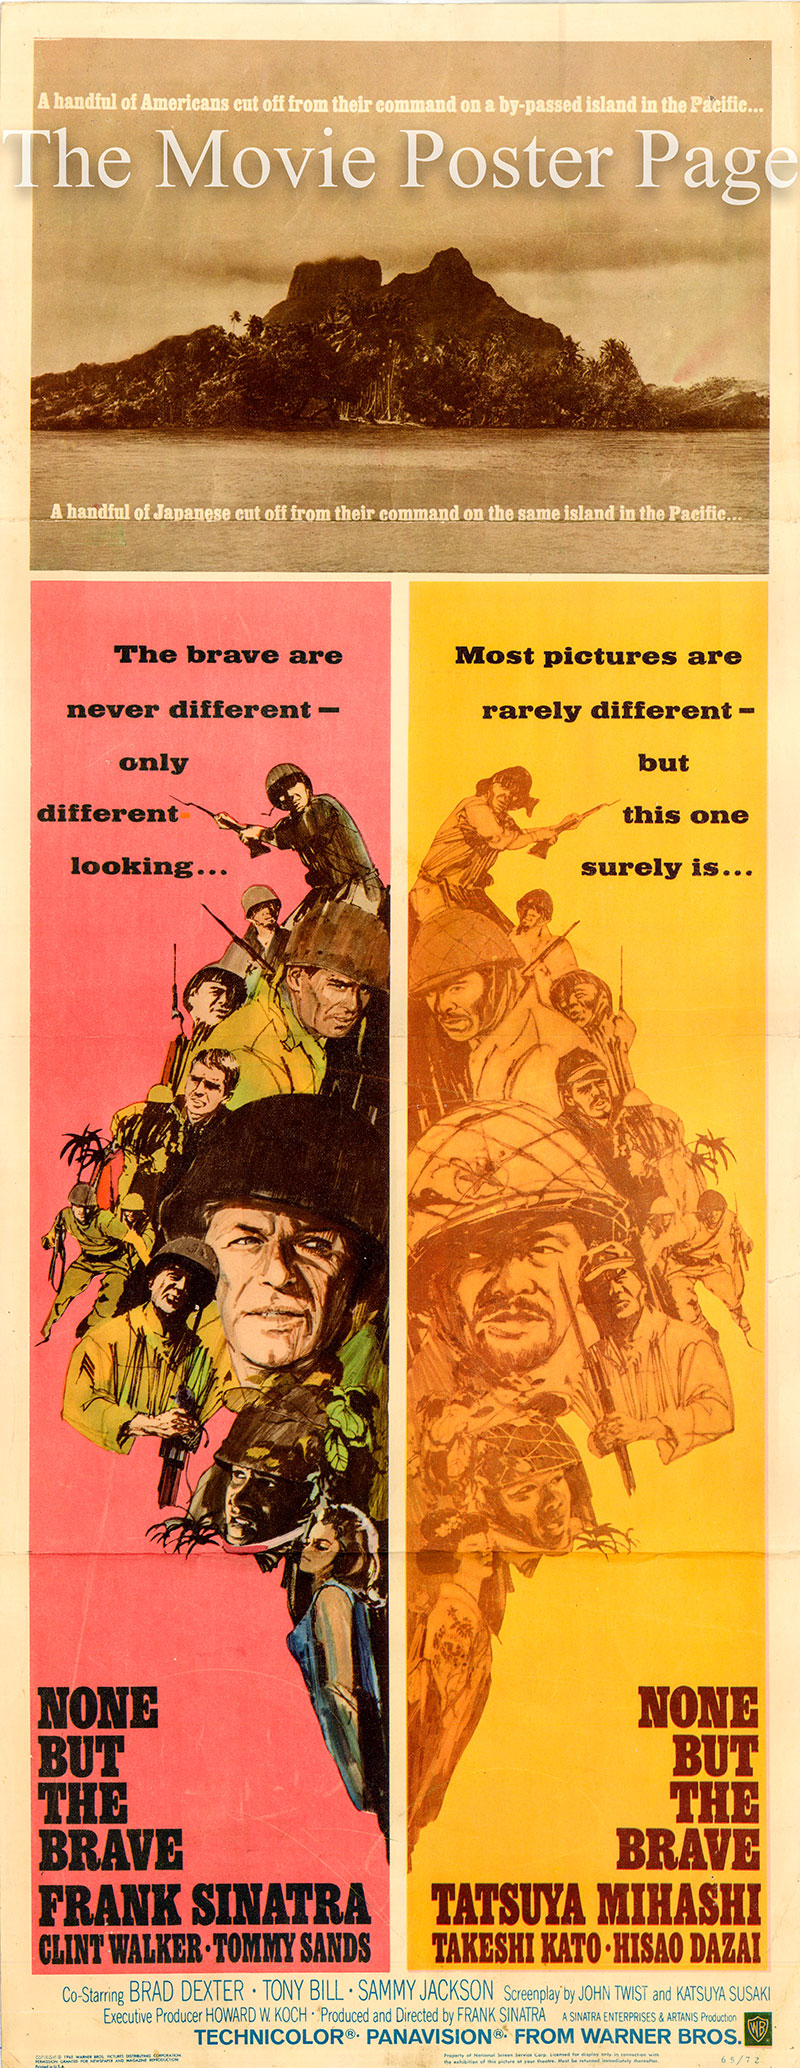 Pictured is a US insert poster for the 1965 Frank Sinatra film None but the Brave starring Frank Sinatra as Chief Pharmacist Mate.